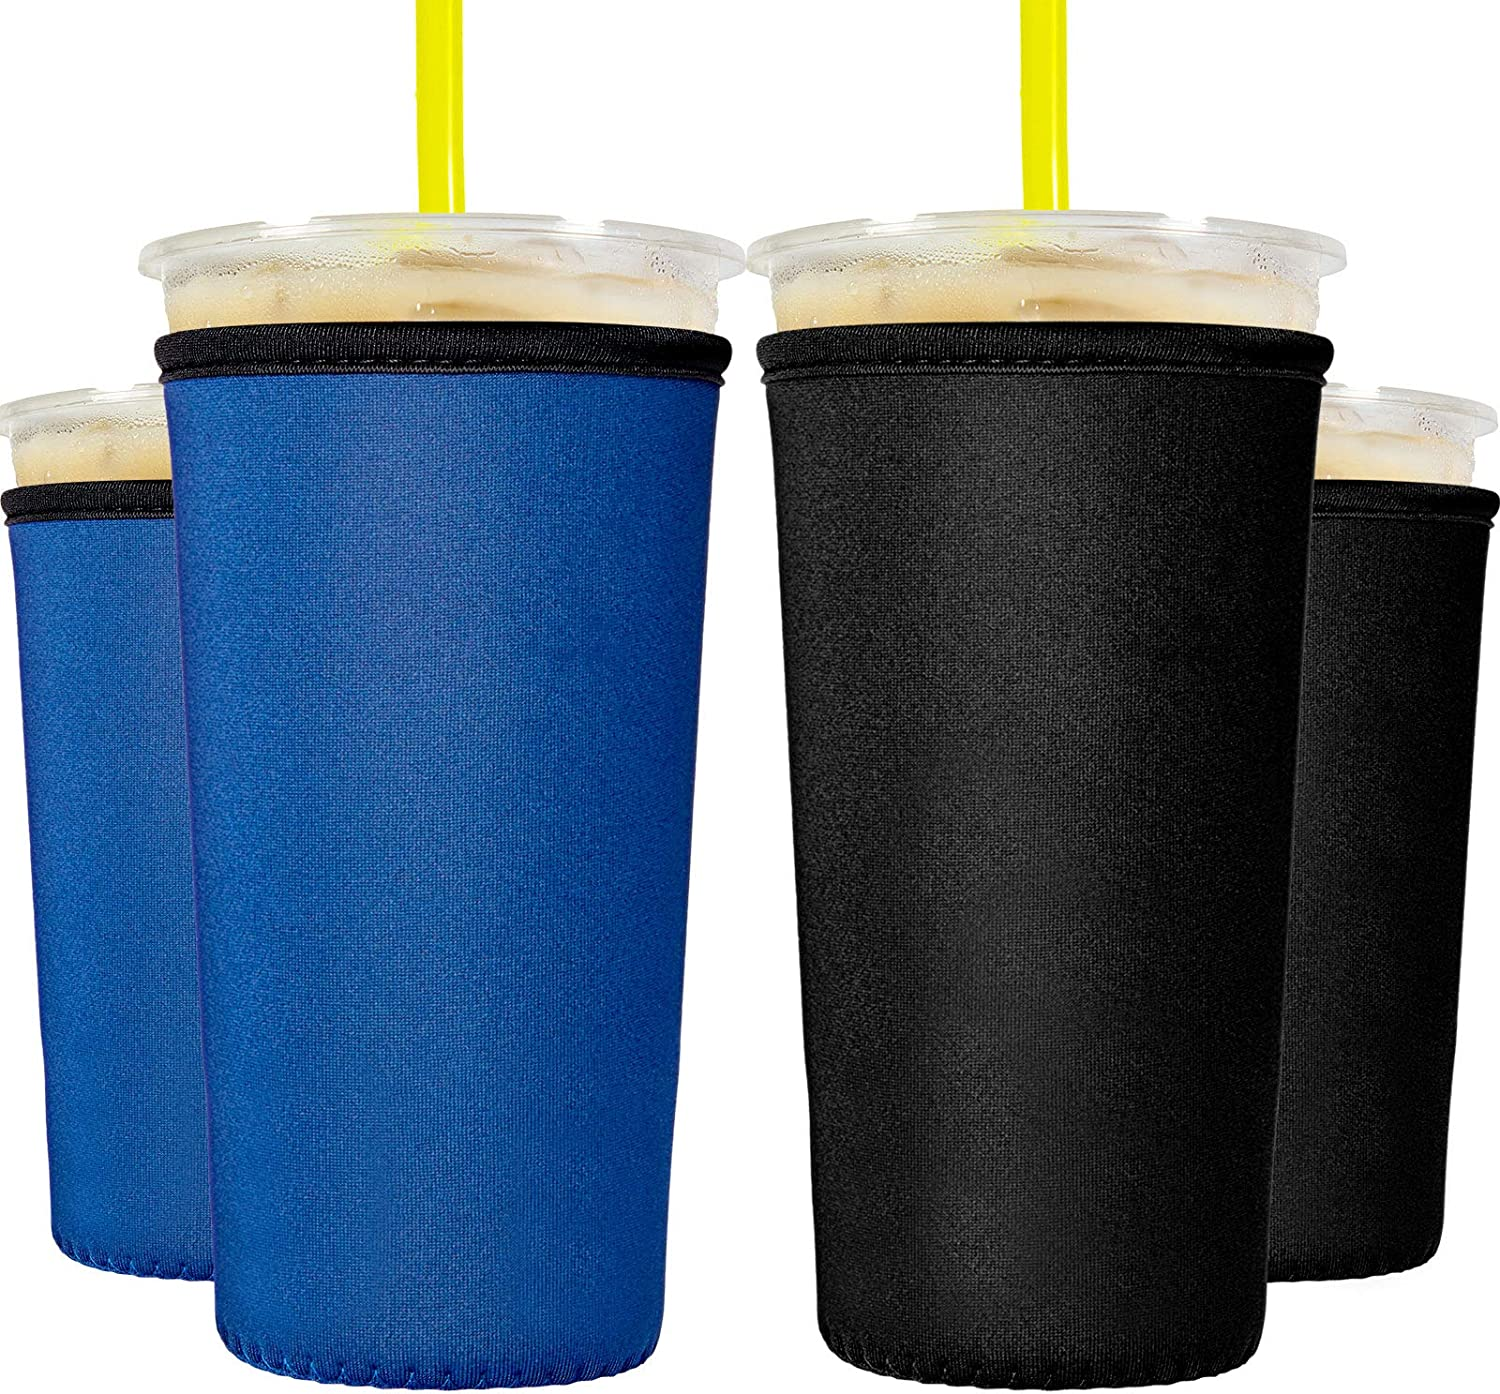 8 Pieces Reusable Iced Coffee Cup Sleeve Neoprene Cup Cover Drink Insulator Sleeves 2 Sizes Insulated Sleeves Drinks Holder for 22 oz to 32 oz Cold Hot Drink Beverages Cup Bottle (Black and Blue)